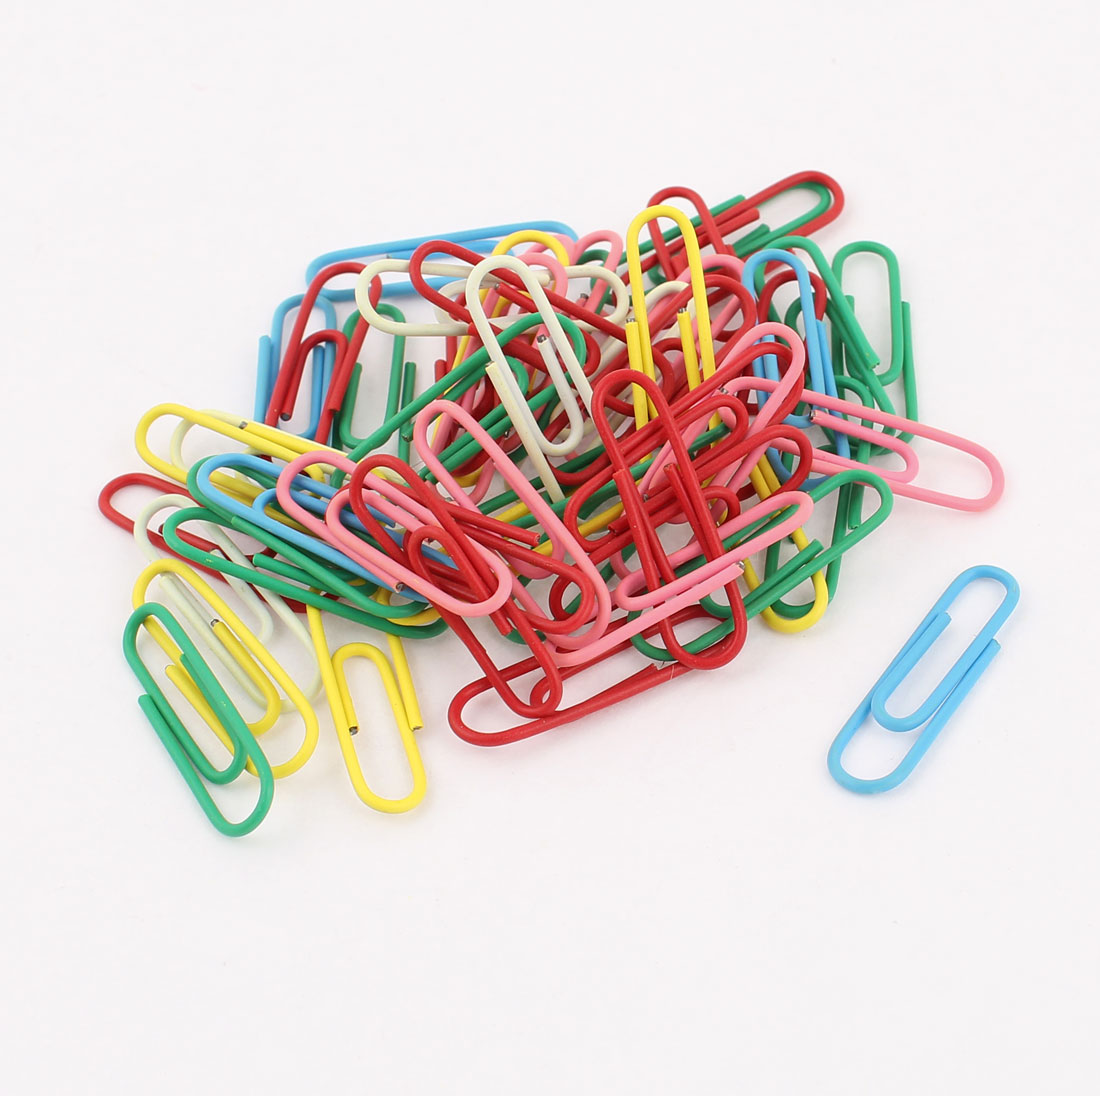 Officer Colorful Label File Note Bookmark Paper Clips Clamps 54 Pcs